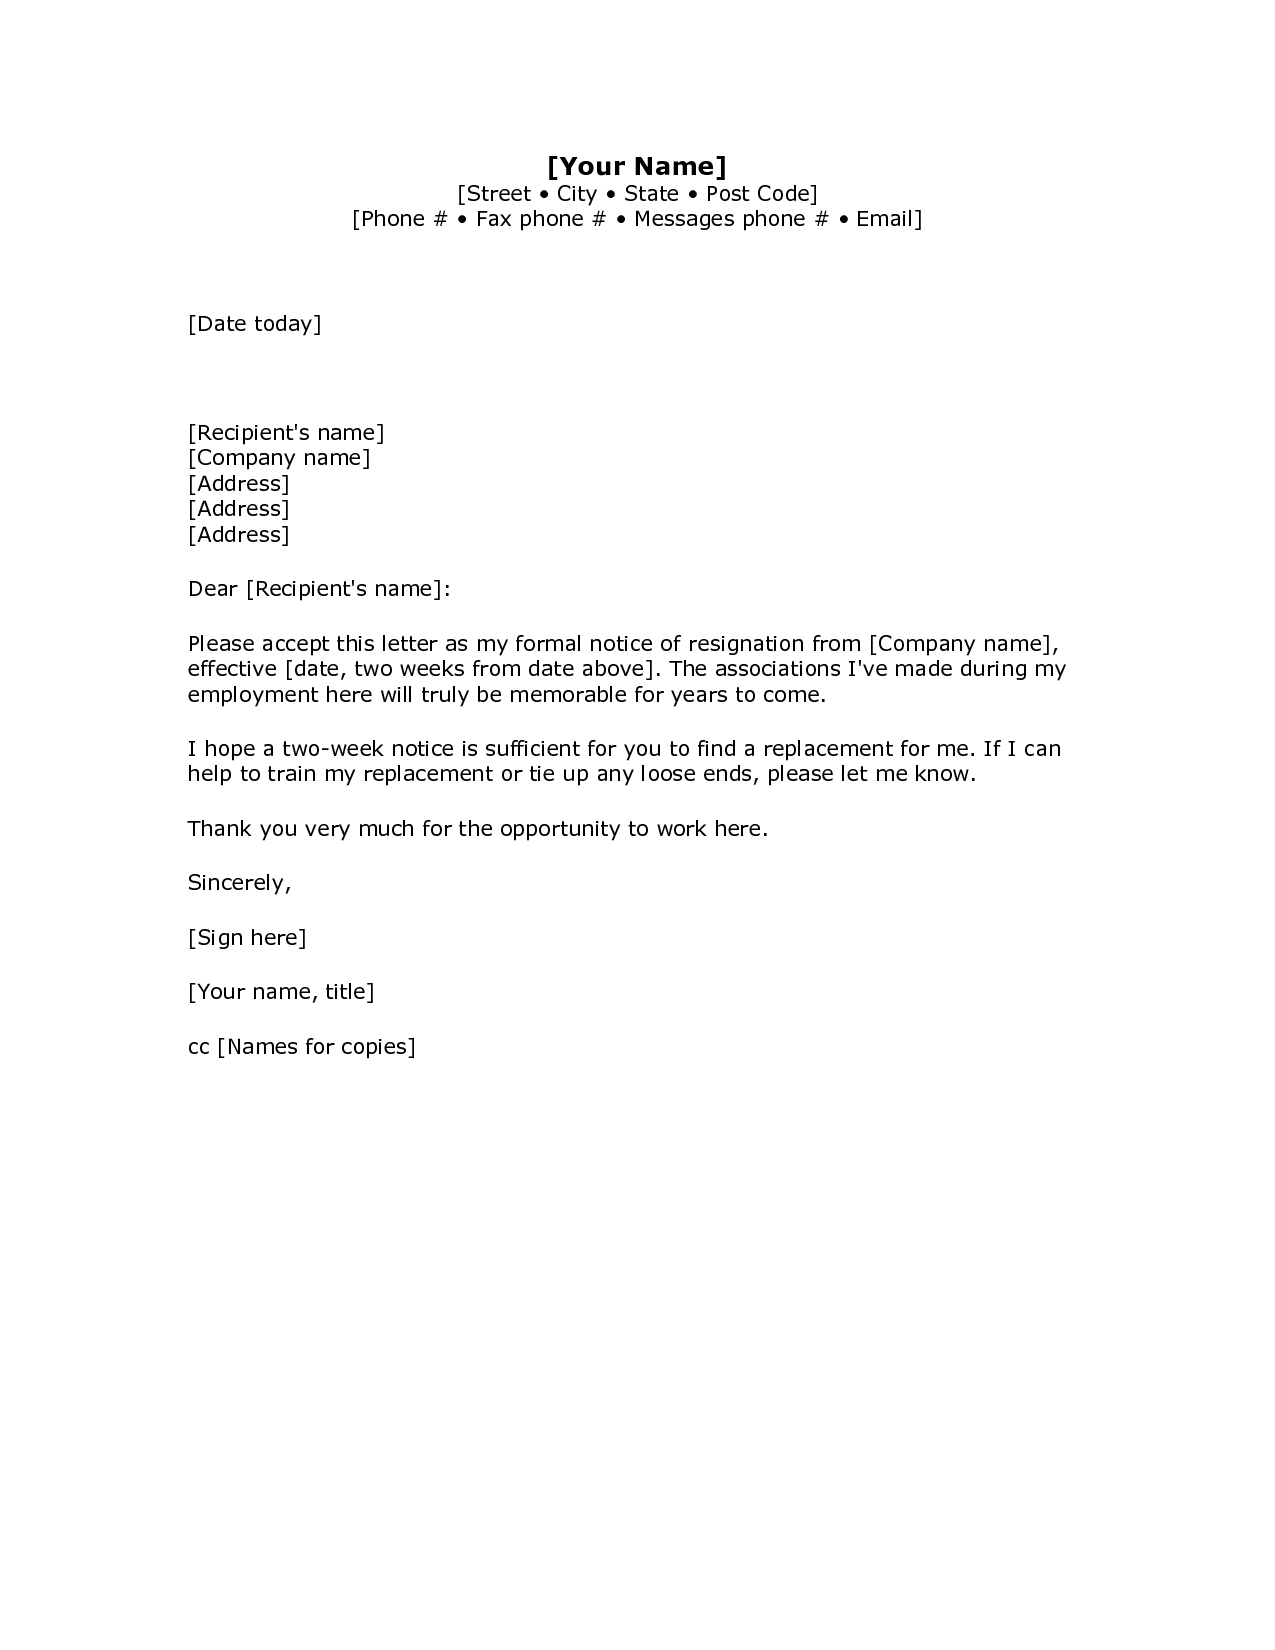 Genetic Counseling Letter Template - 2 Weeks Notice Letter Resignation Letter Week Notice Words Hdwriting